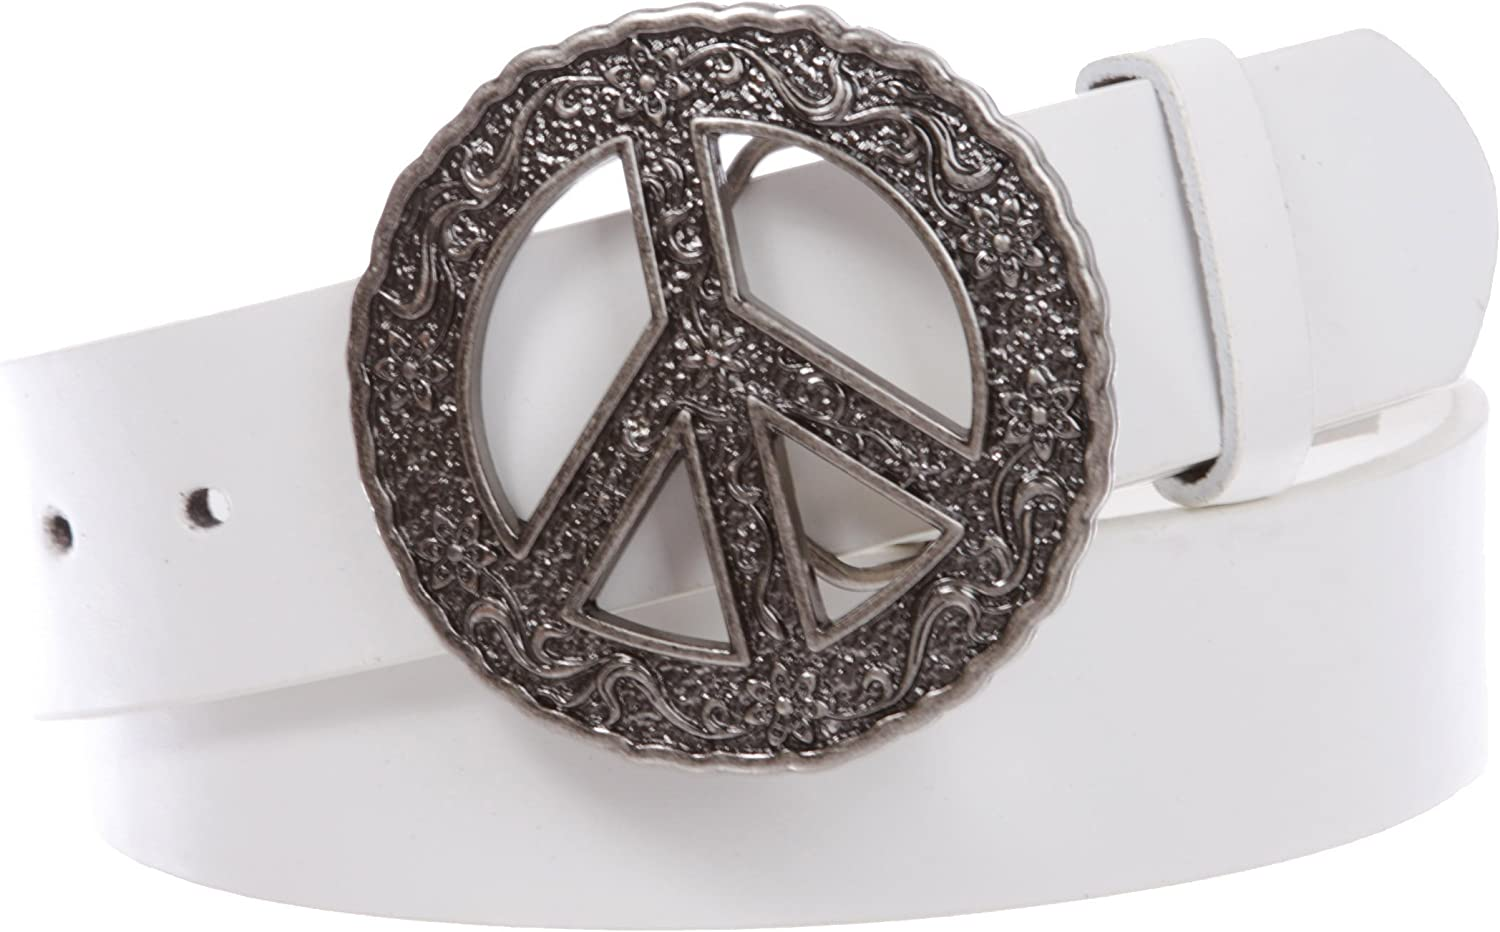 1 1//2 Snap On Belt With Round Perforated Floral Engraving Peace Sign Belt Buckle